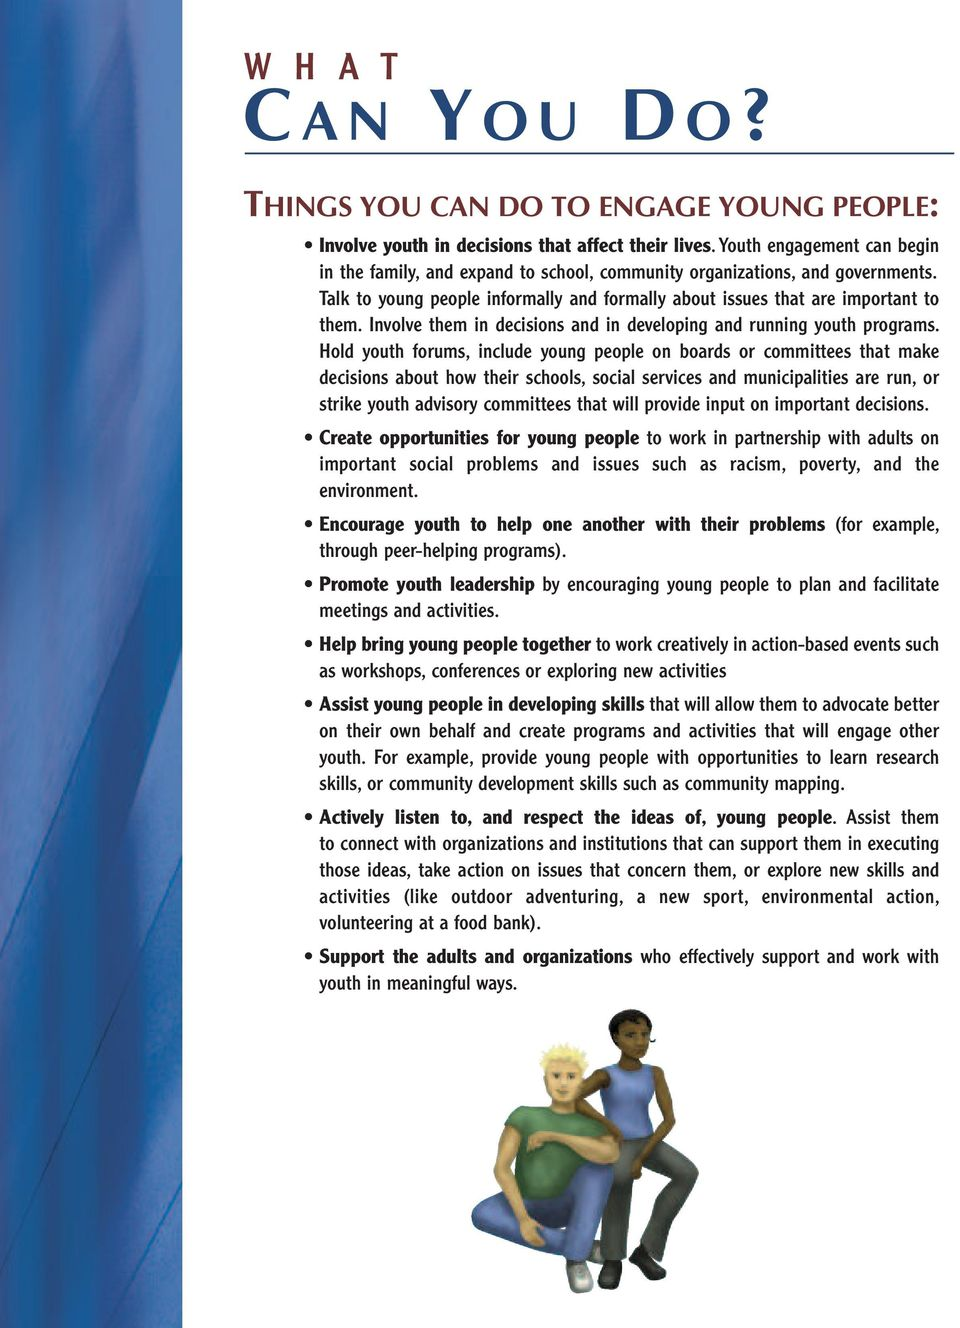 Involve them in decisions and in developing and running youth programs.